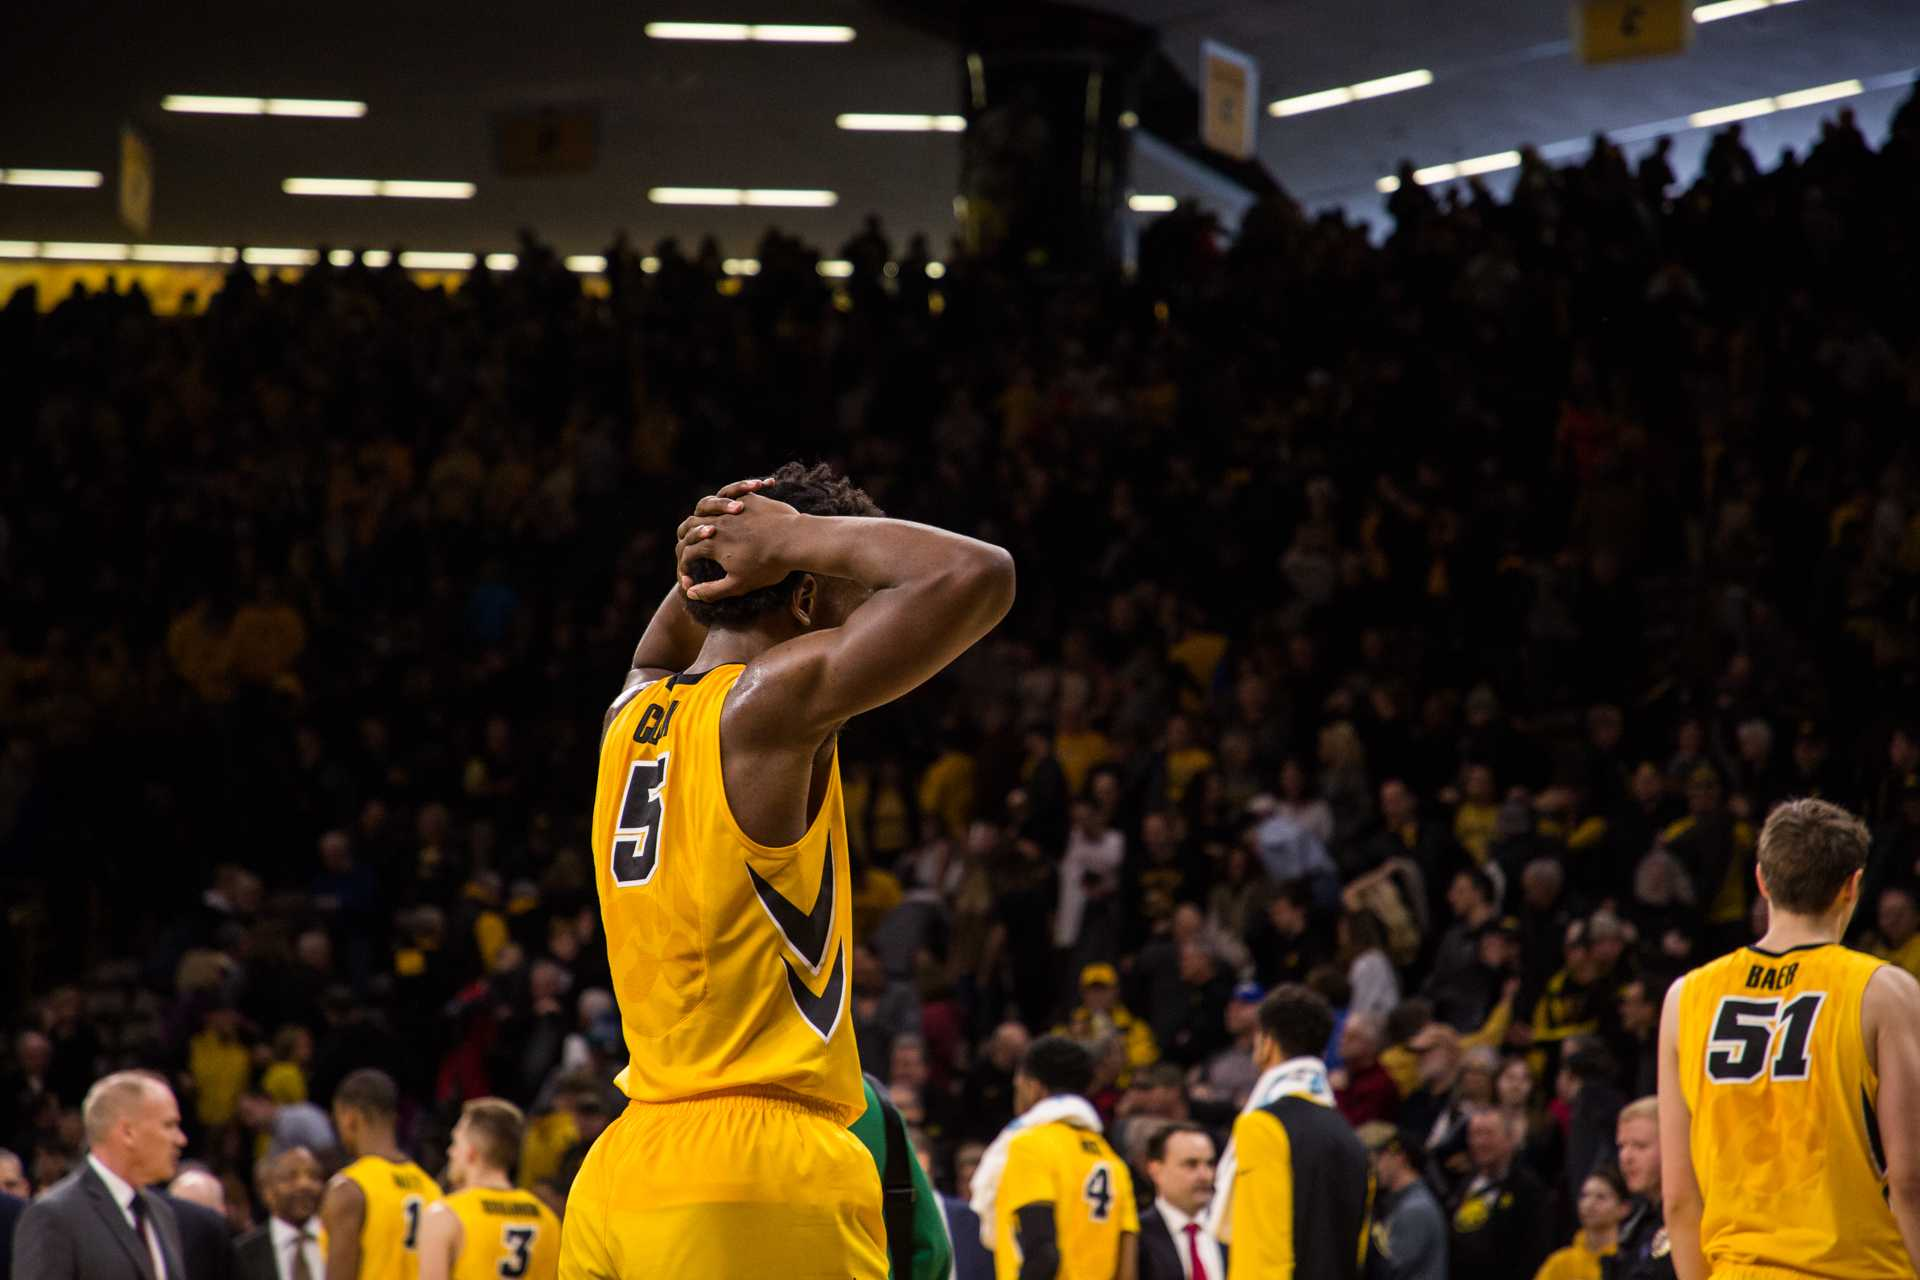 Iowa forward Tyler Cook reacts after the final buzzer against Indiana University at Carver-Hawkeye Arena on Saturday, Feb. 17, 2018. The Hoosiers defeated the Hawkeyes 84 to 82. (David Harmantas/The Daily Iowan)